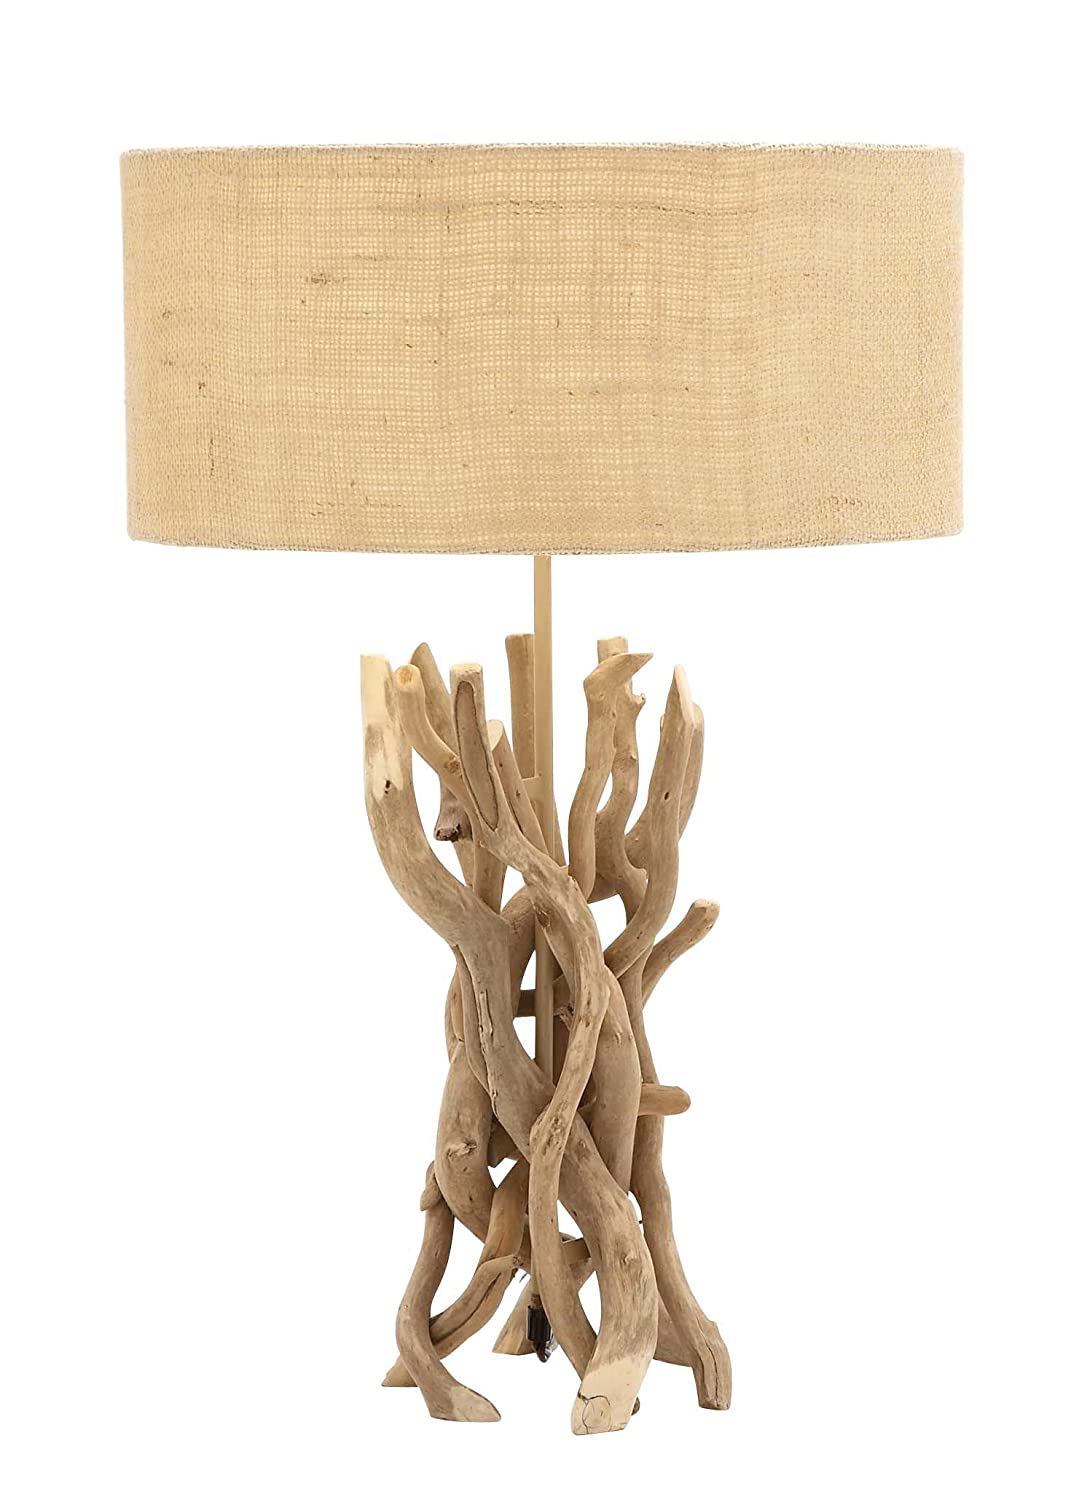 Amazon benzara 67711 the cool driftwood metal table lamp home amazon benzara 67711 the cool driftwood metal table lamp home kitchen mozeypictures Gallery